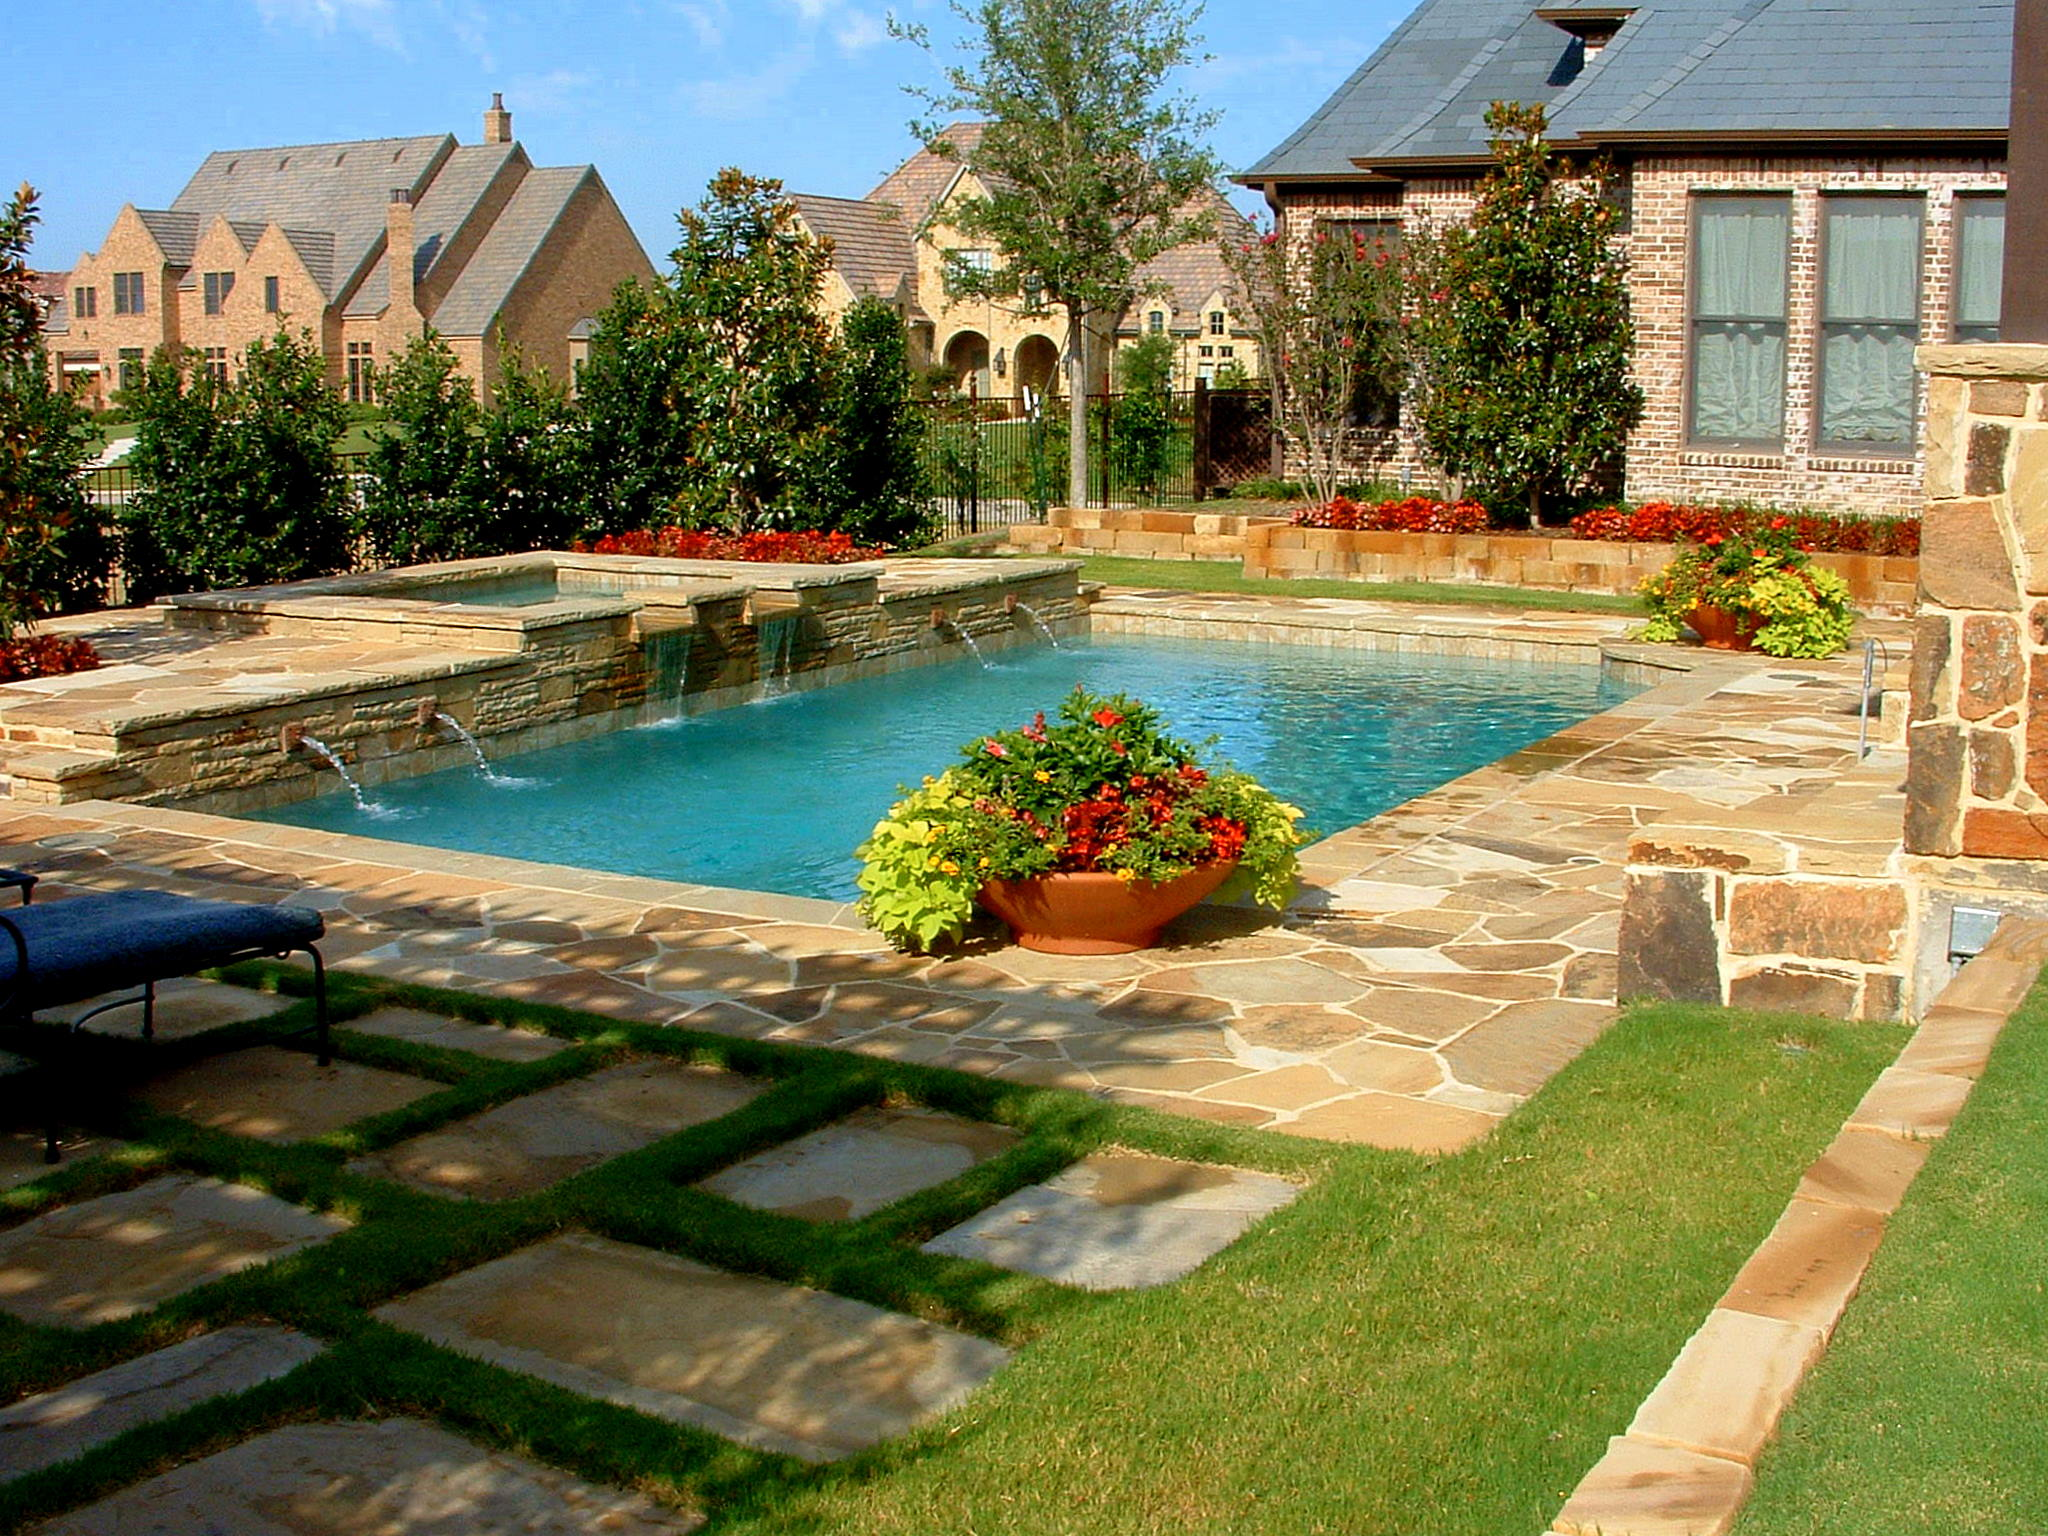 backyard landscaping ideas swimming pool design On pool landscaping ideas